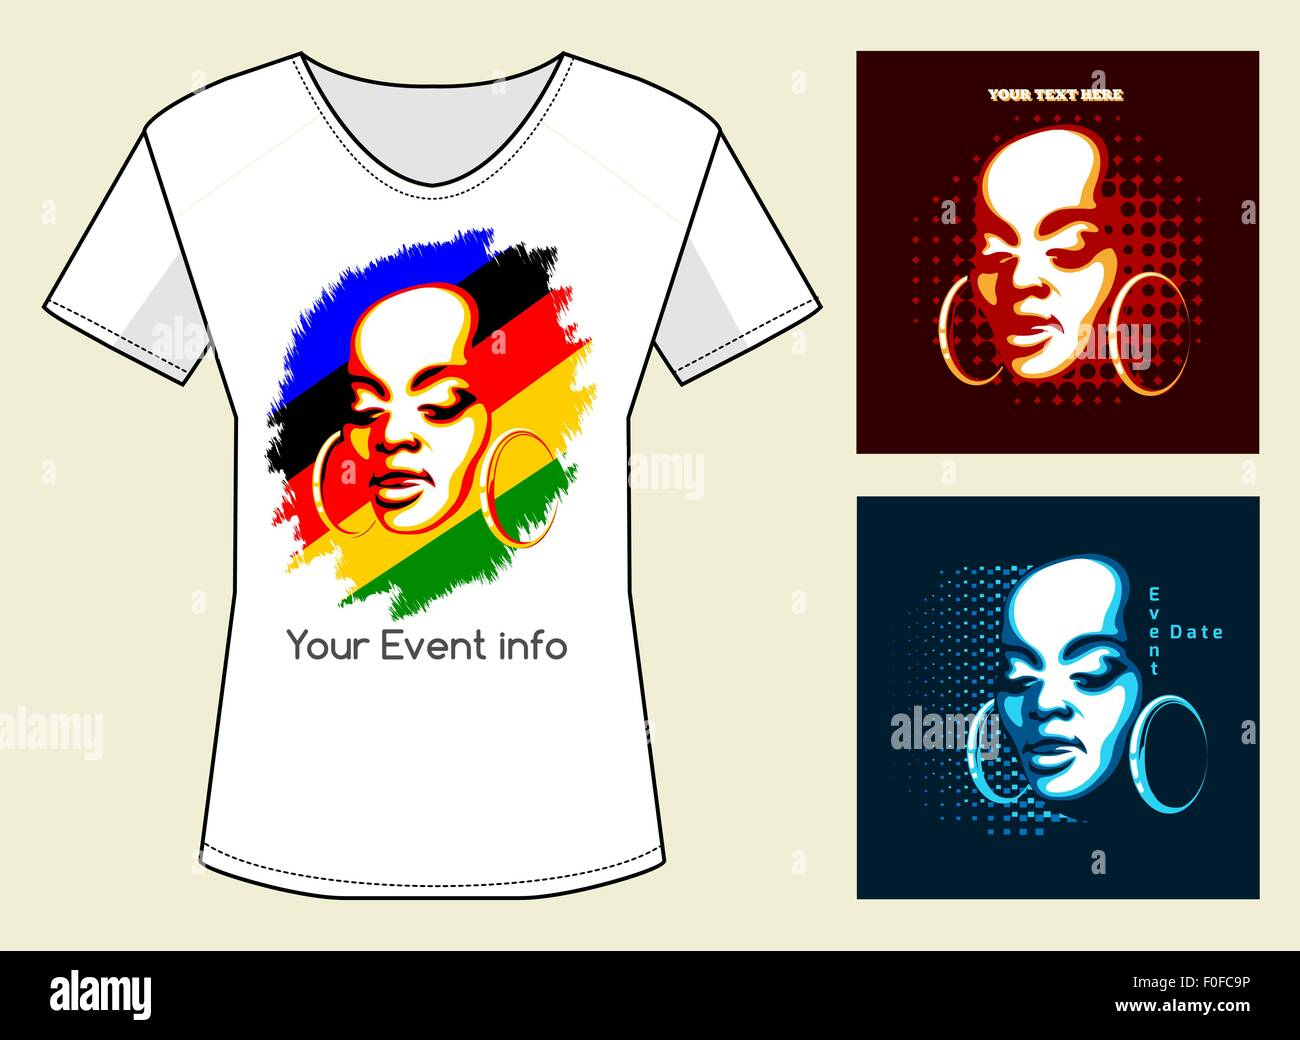 fe86b631f T-Shirt Print in three color variations. African Woman Face with samples of  text. Only free font used.